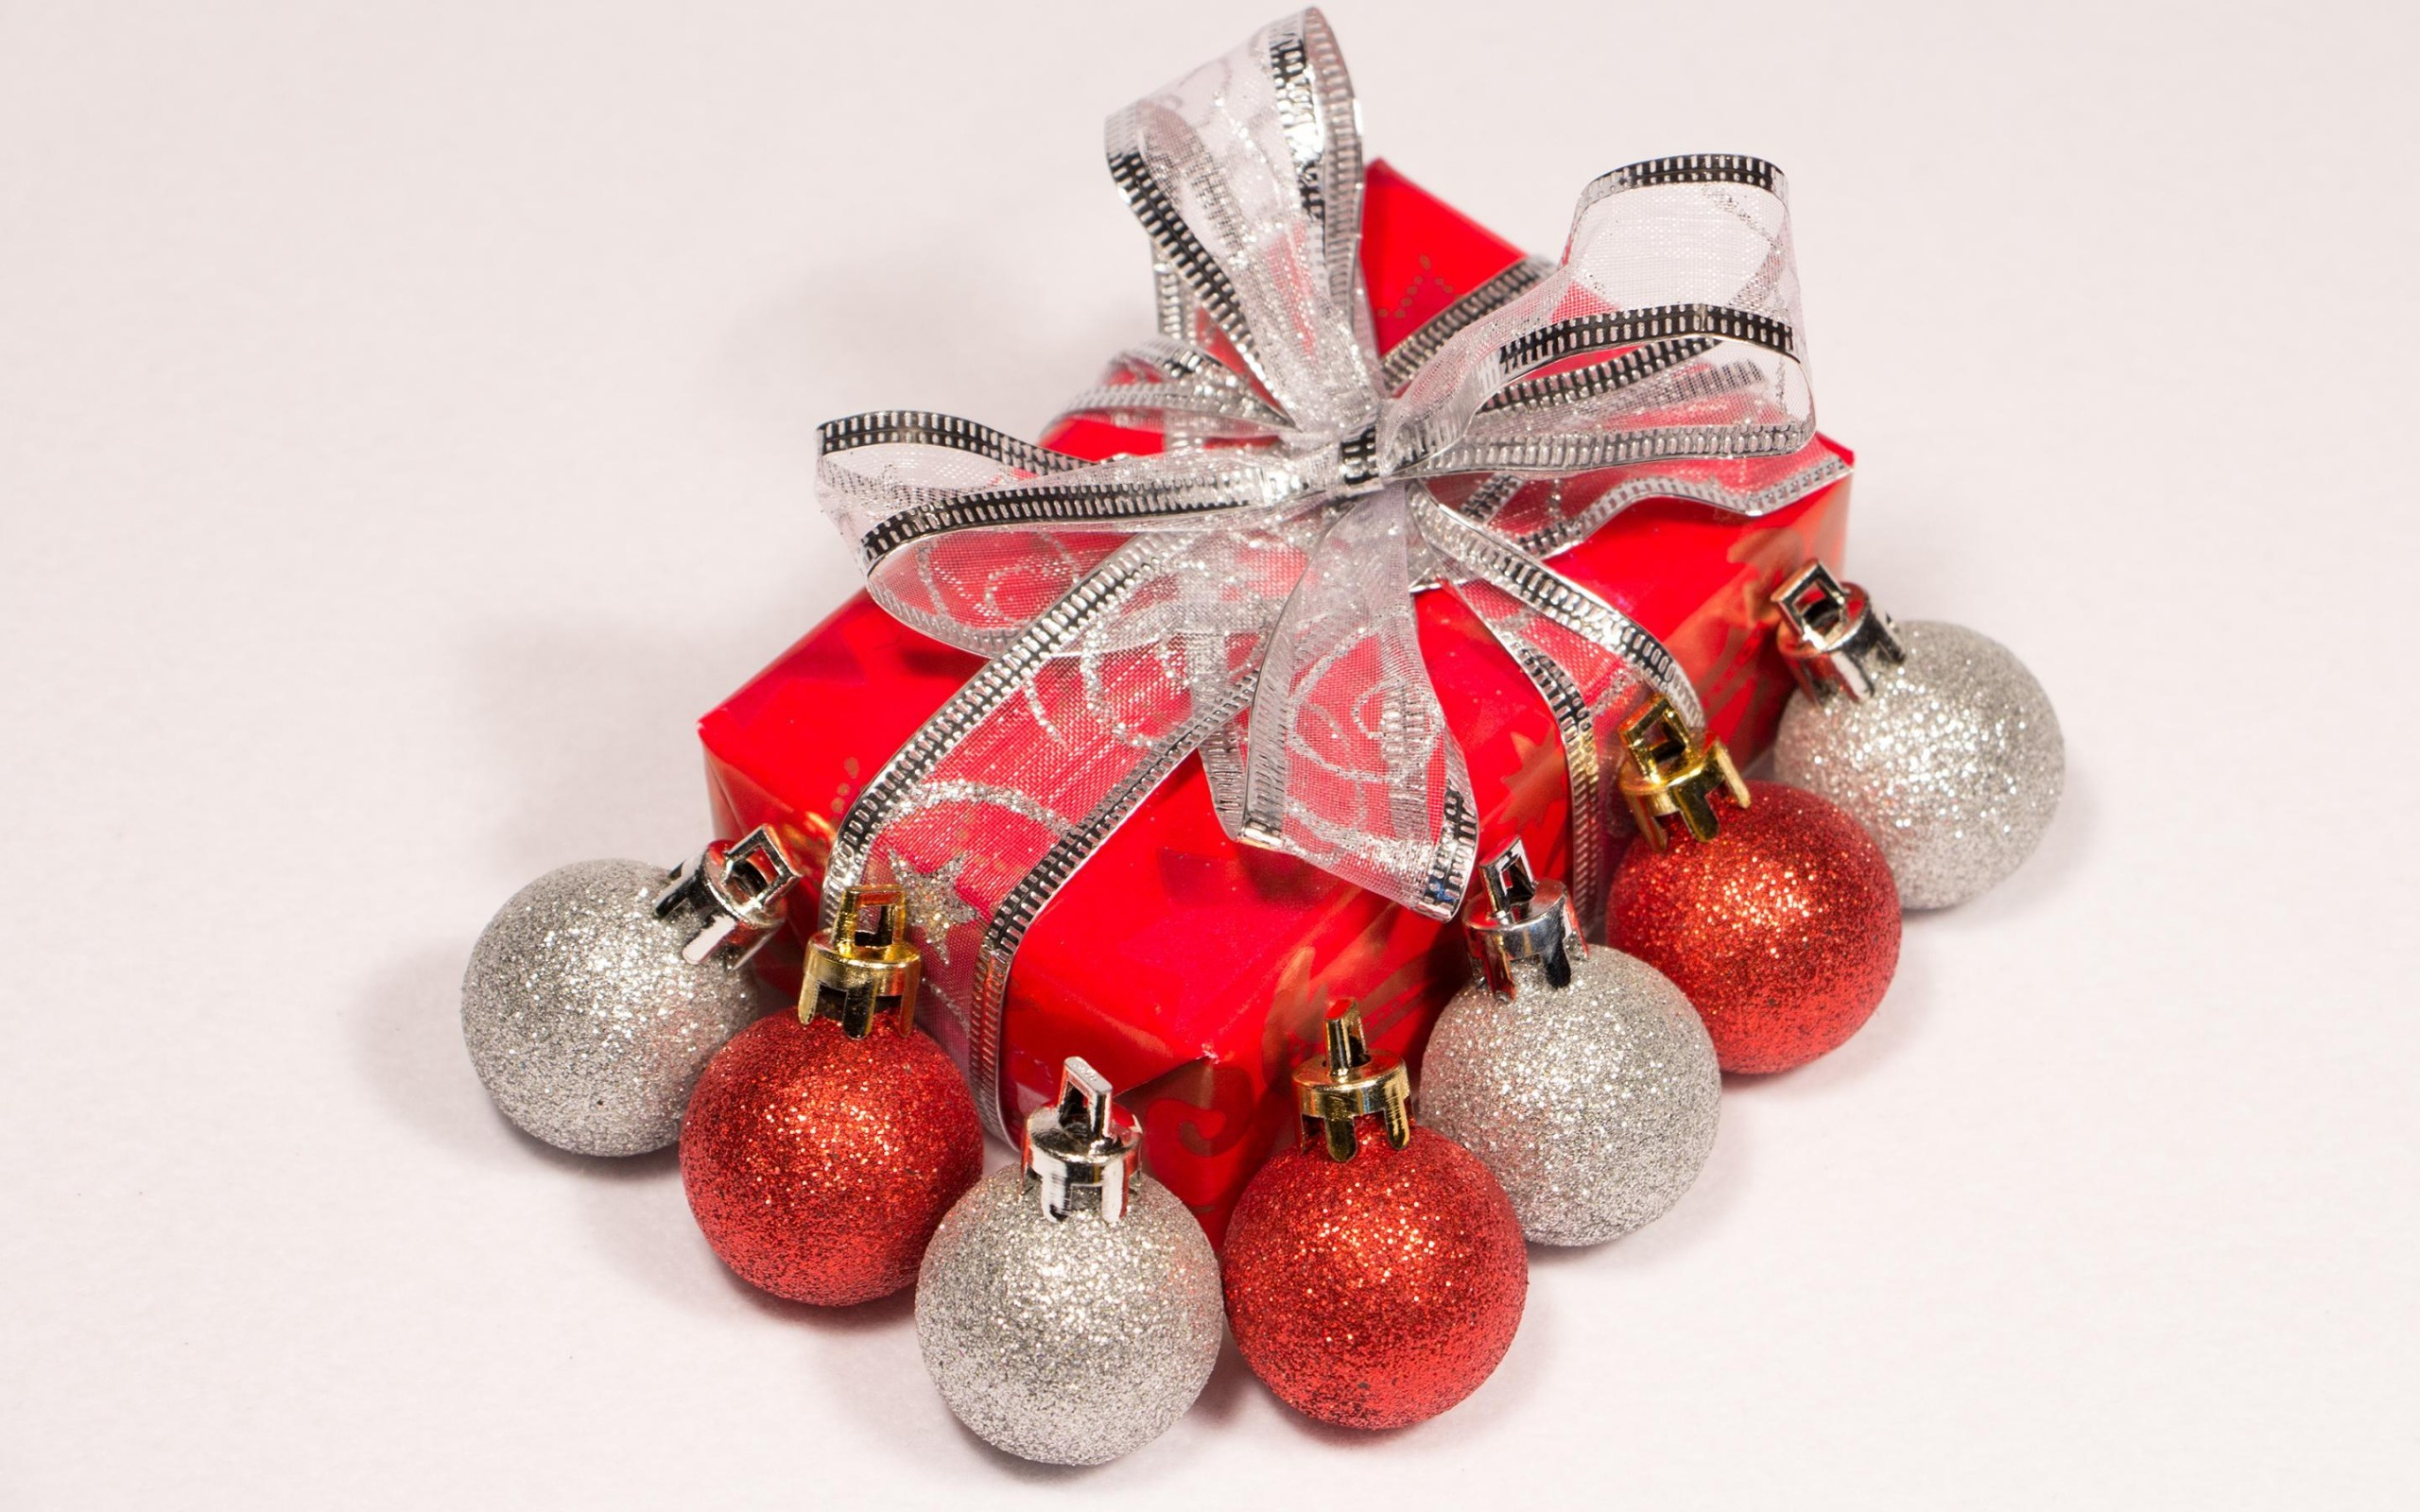 Red and silver baubles by the Christmas present